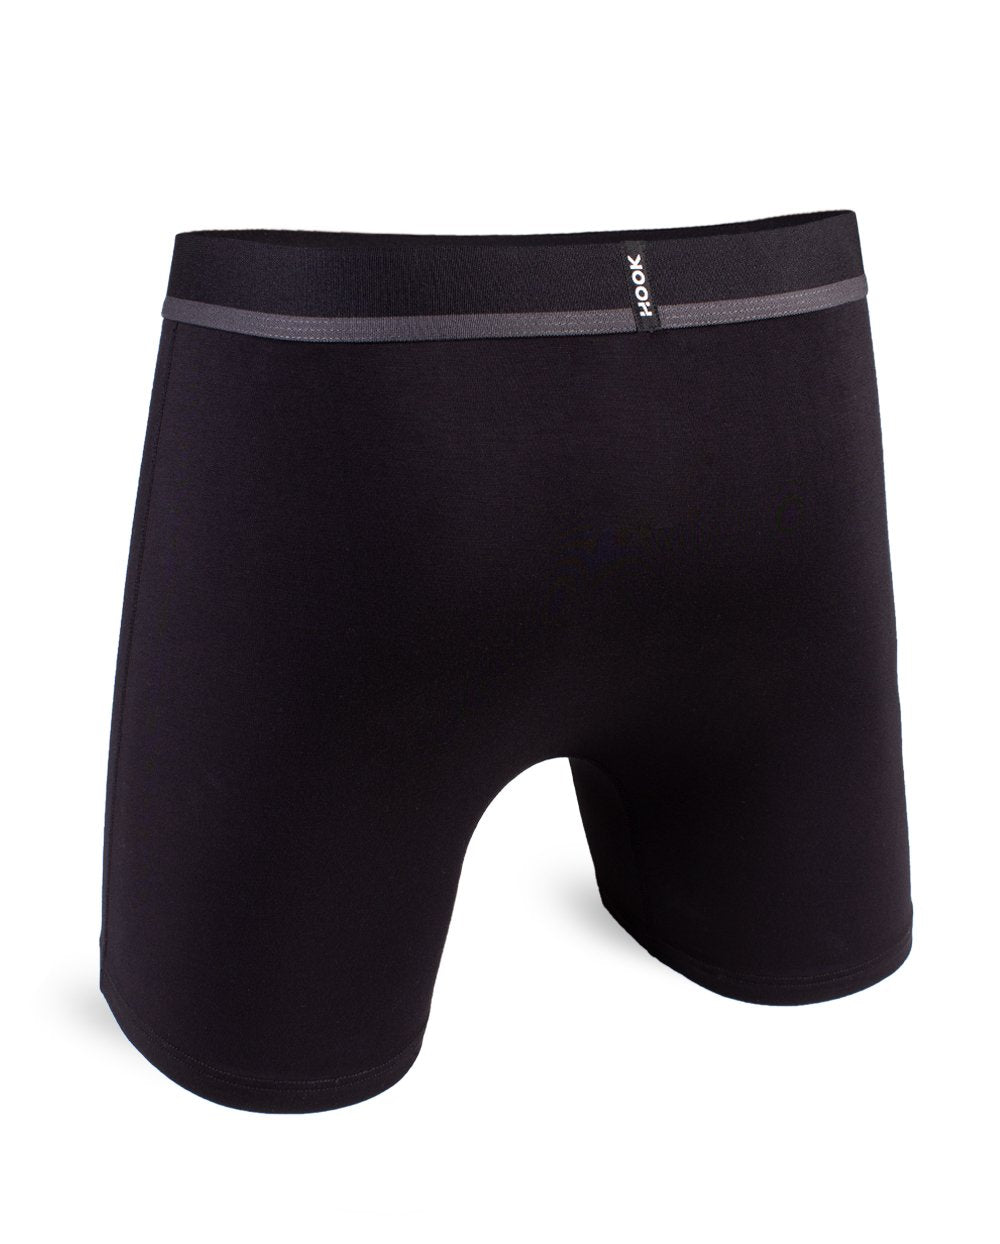 Hook - Feel Solid All Black Boxer Brief